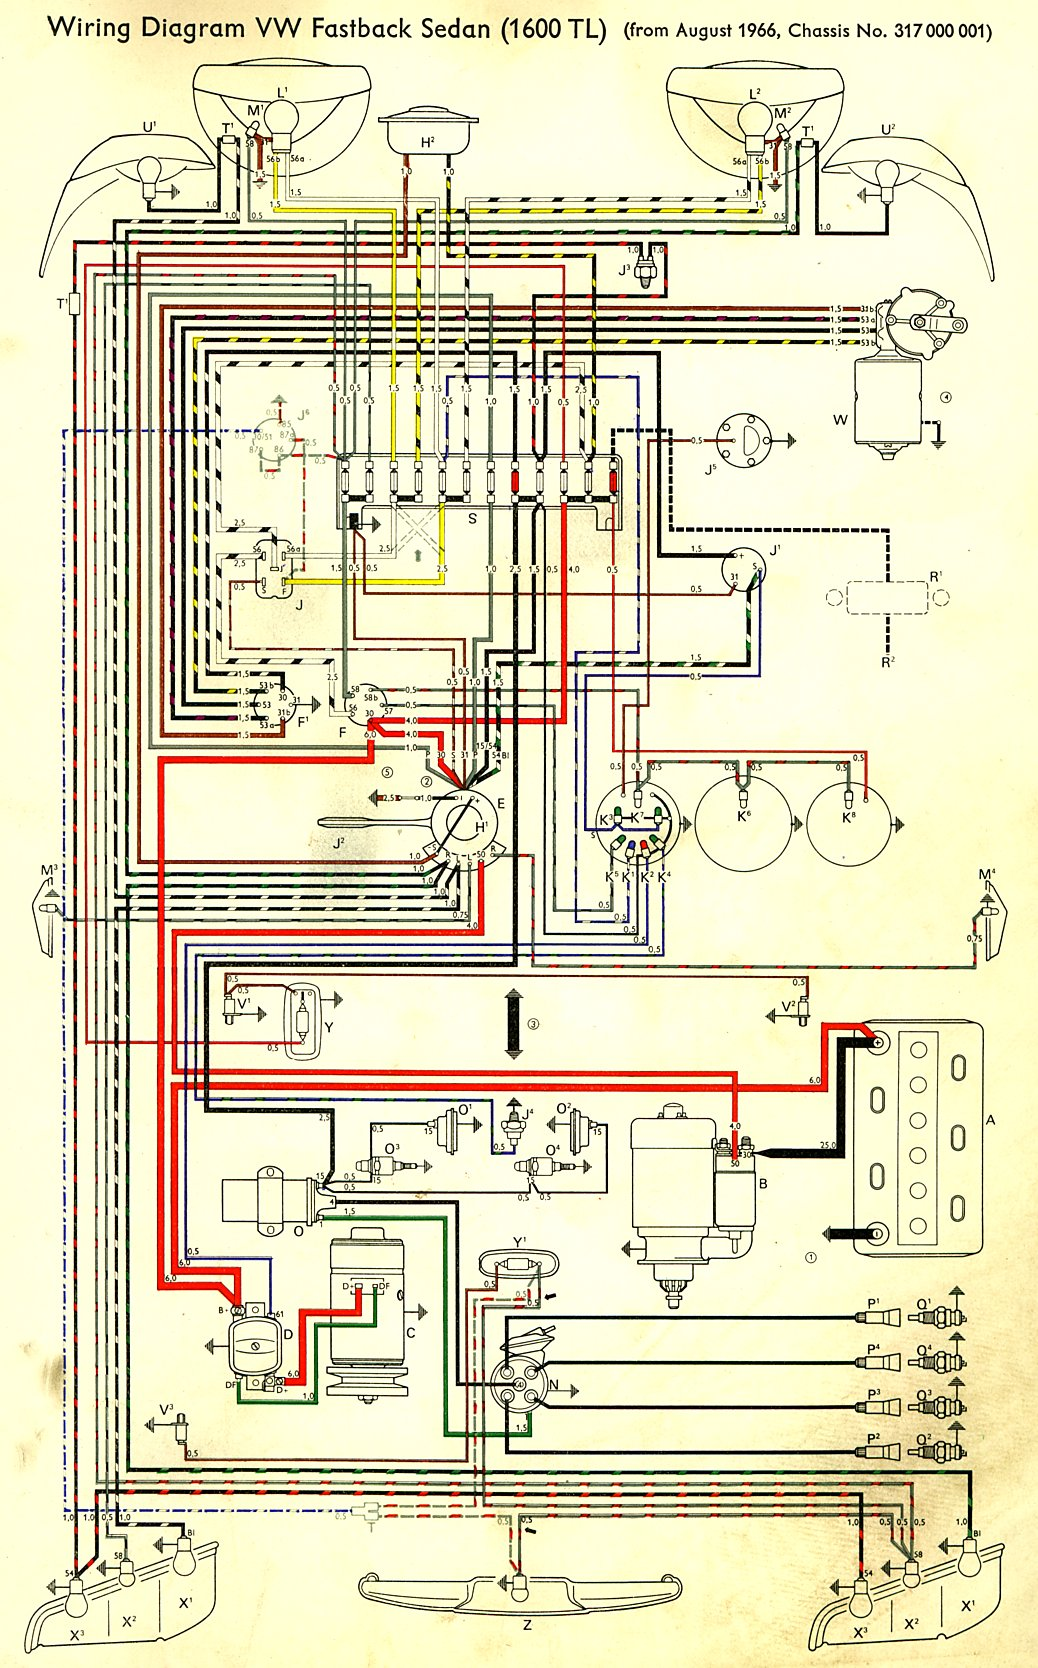 Wiring Diagram For 1967 Vw Beetle : Der luftkühlers view topic help t question about